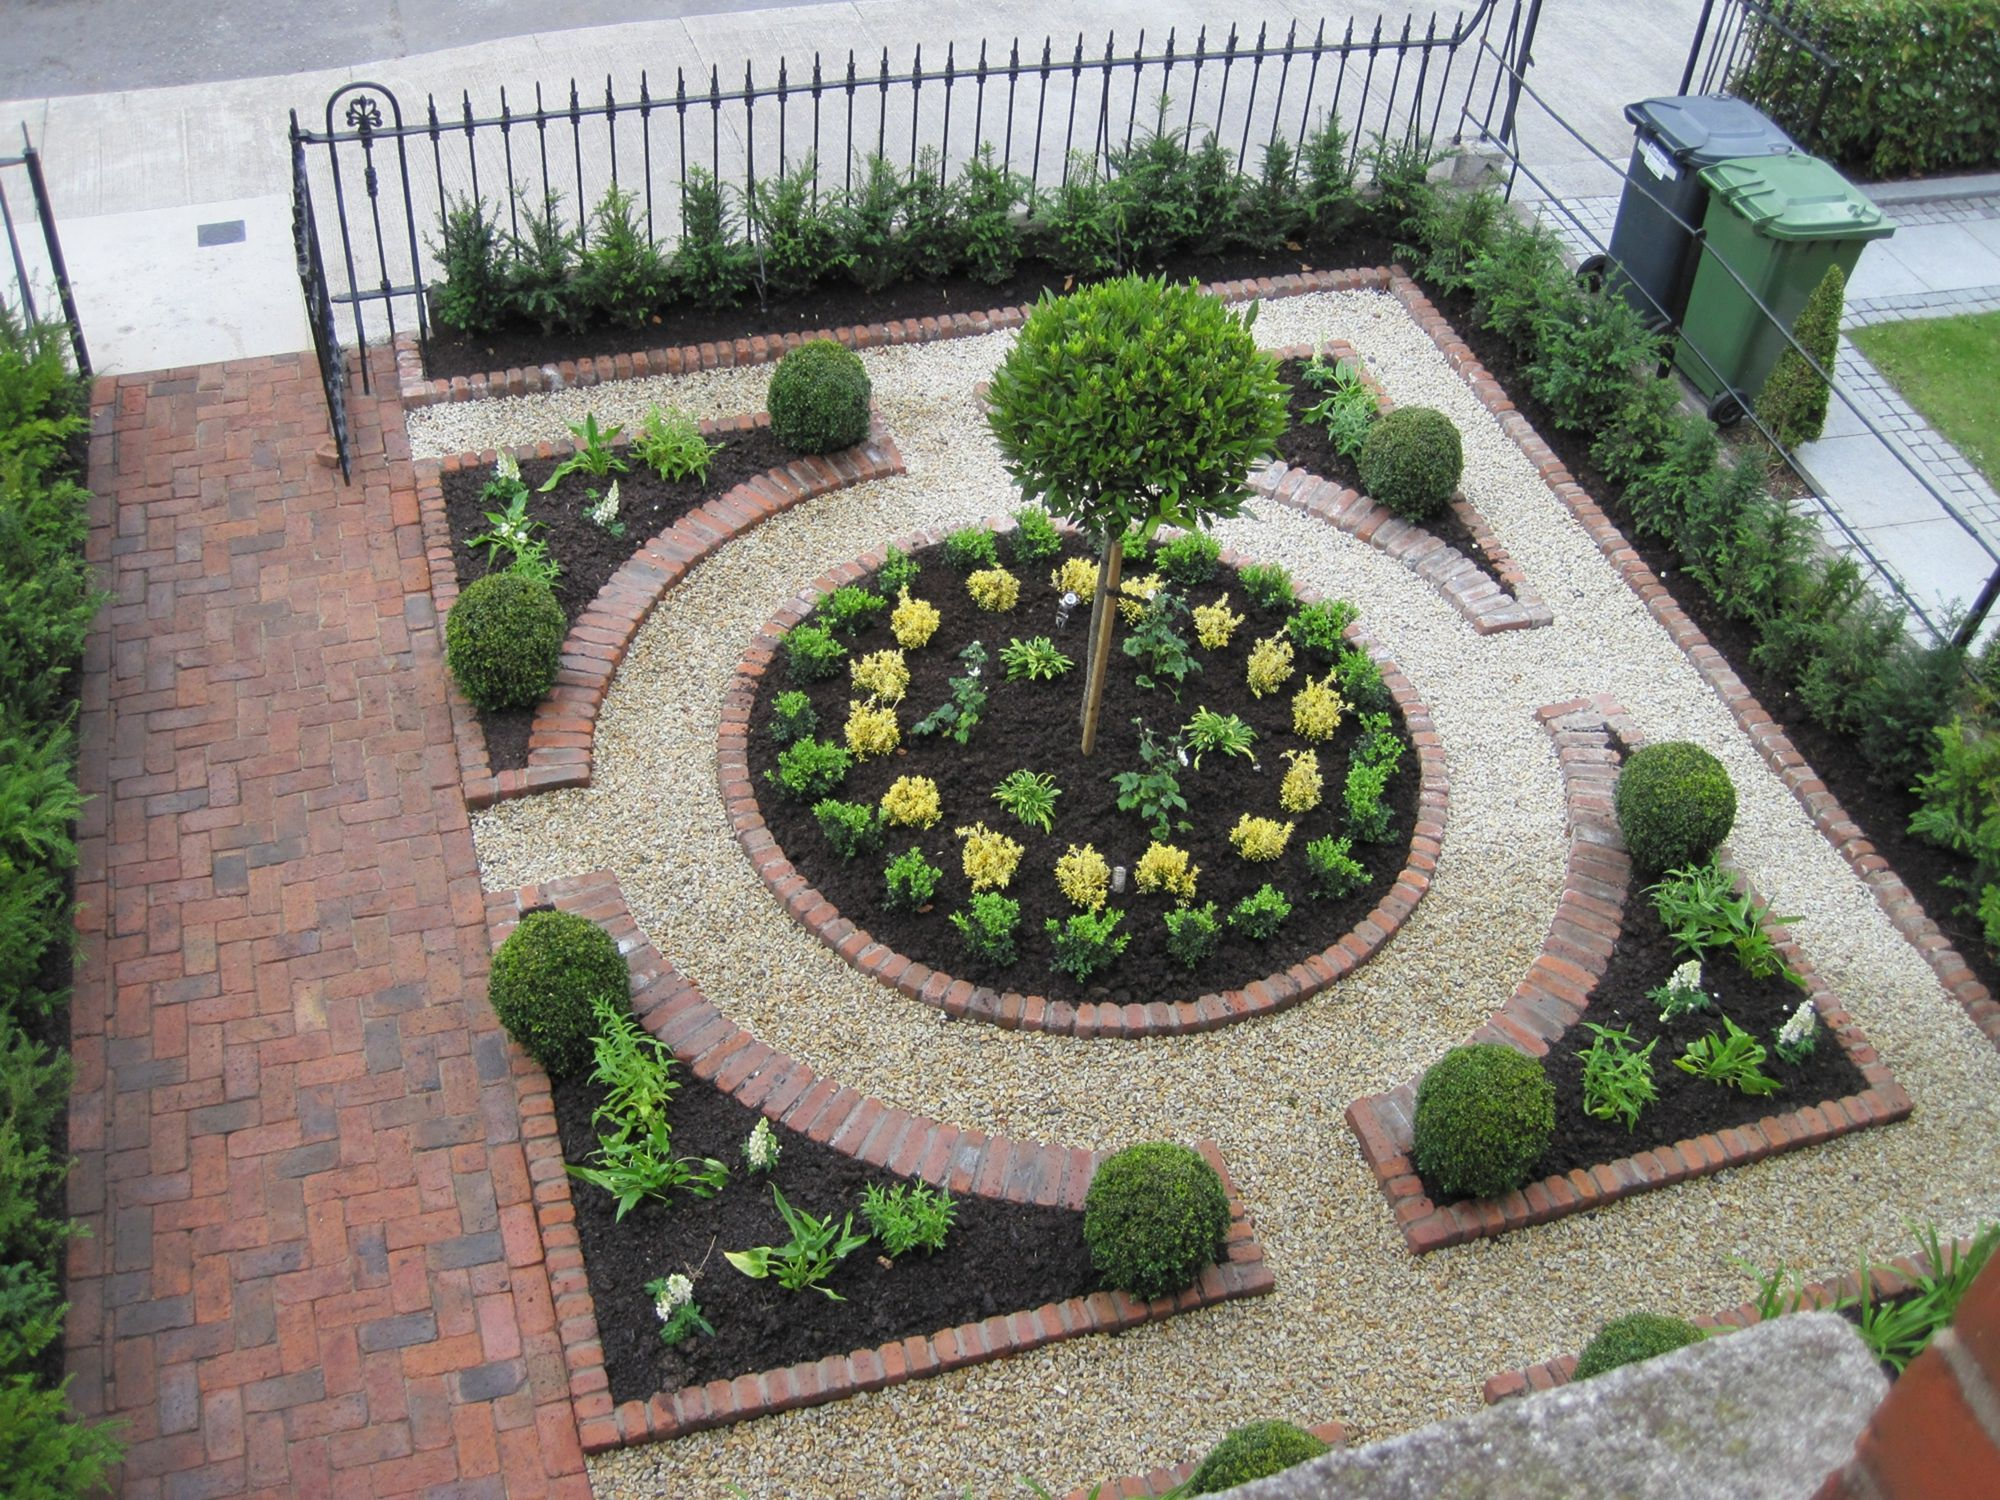 Outstanding 20 Beautiful Front Garden Ideas That Can Make You Fall In Love Https Small Front Gardens Small Front Yard Landscaping Small Backyard Landscaping